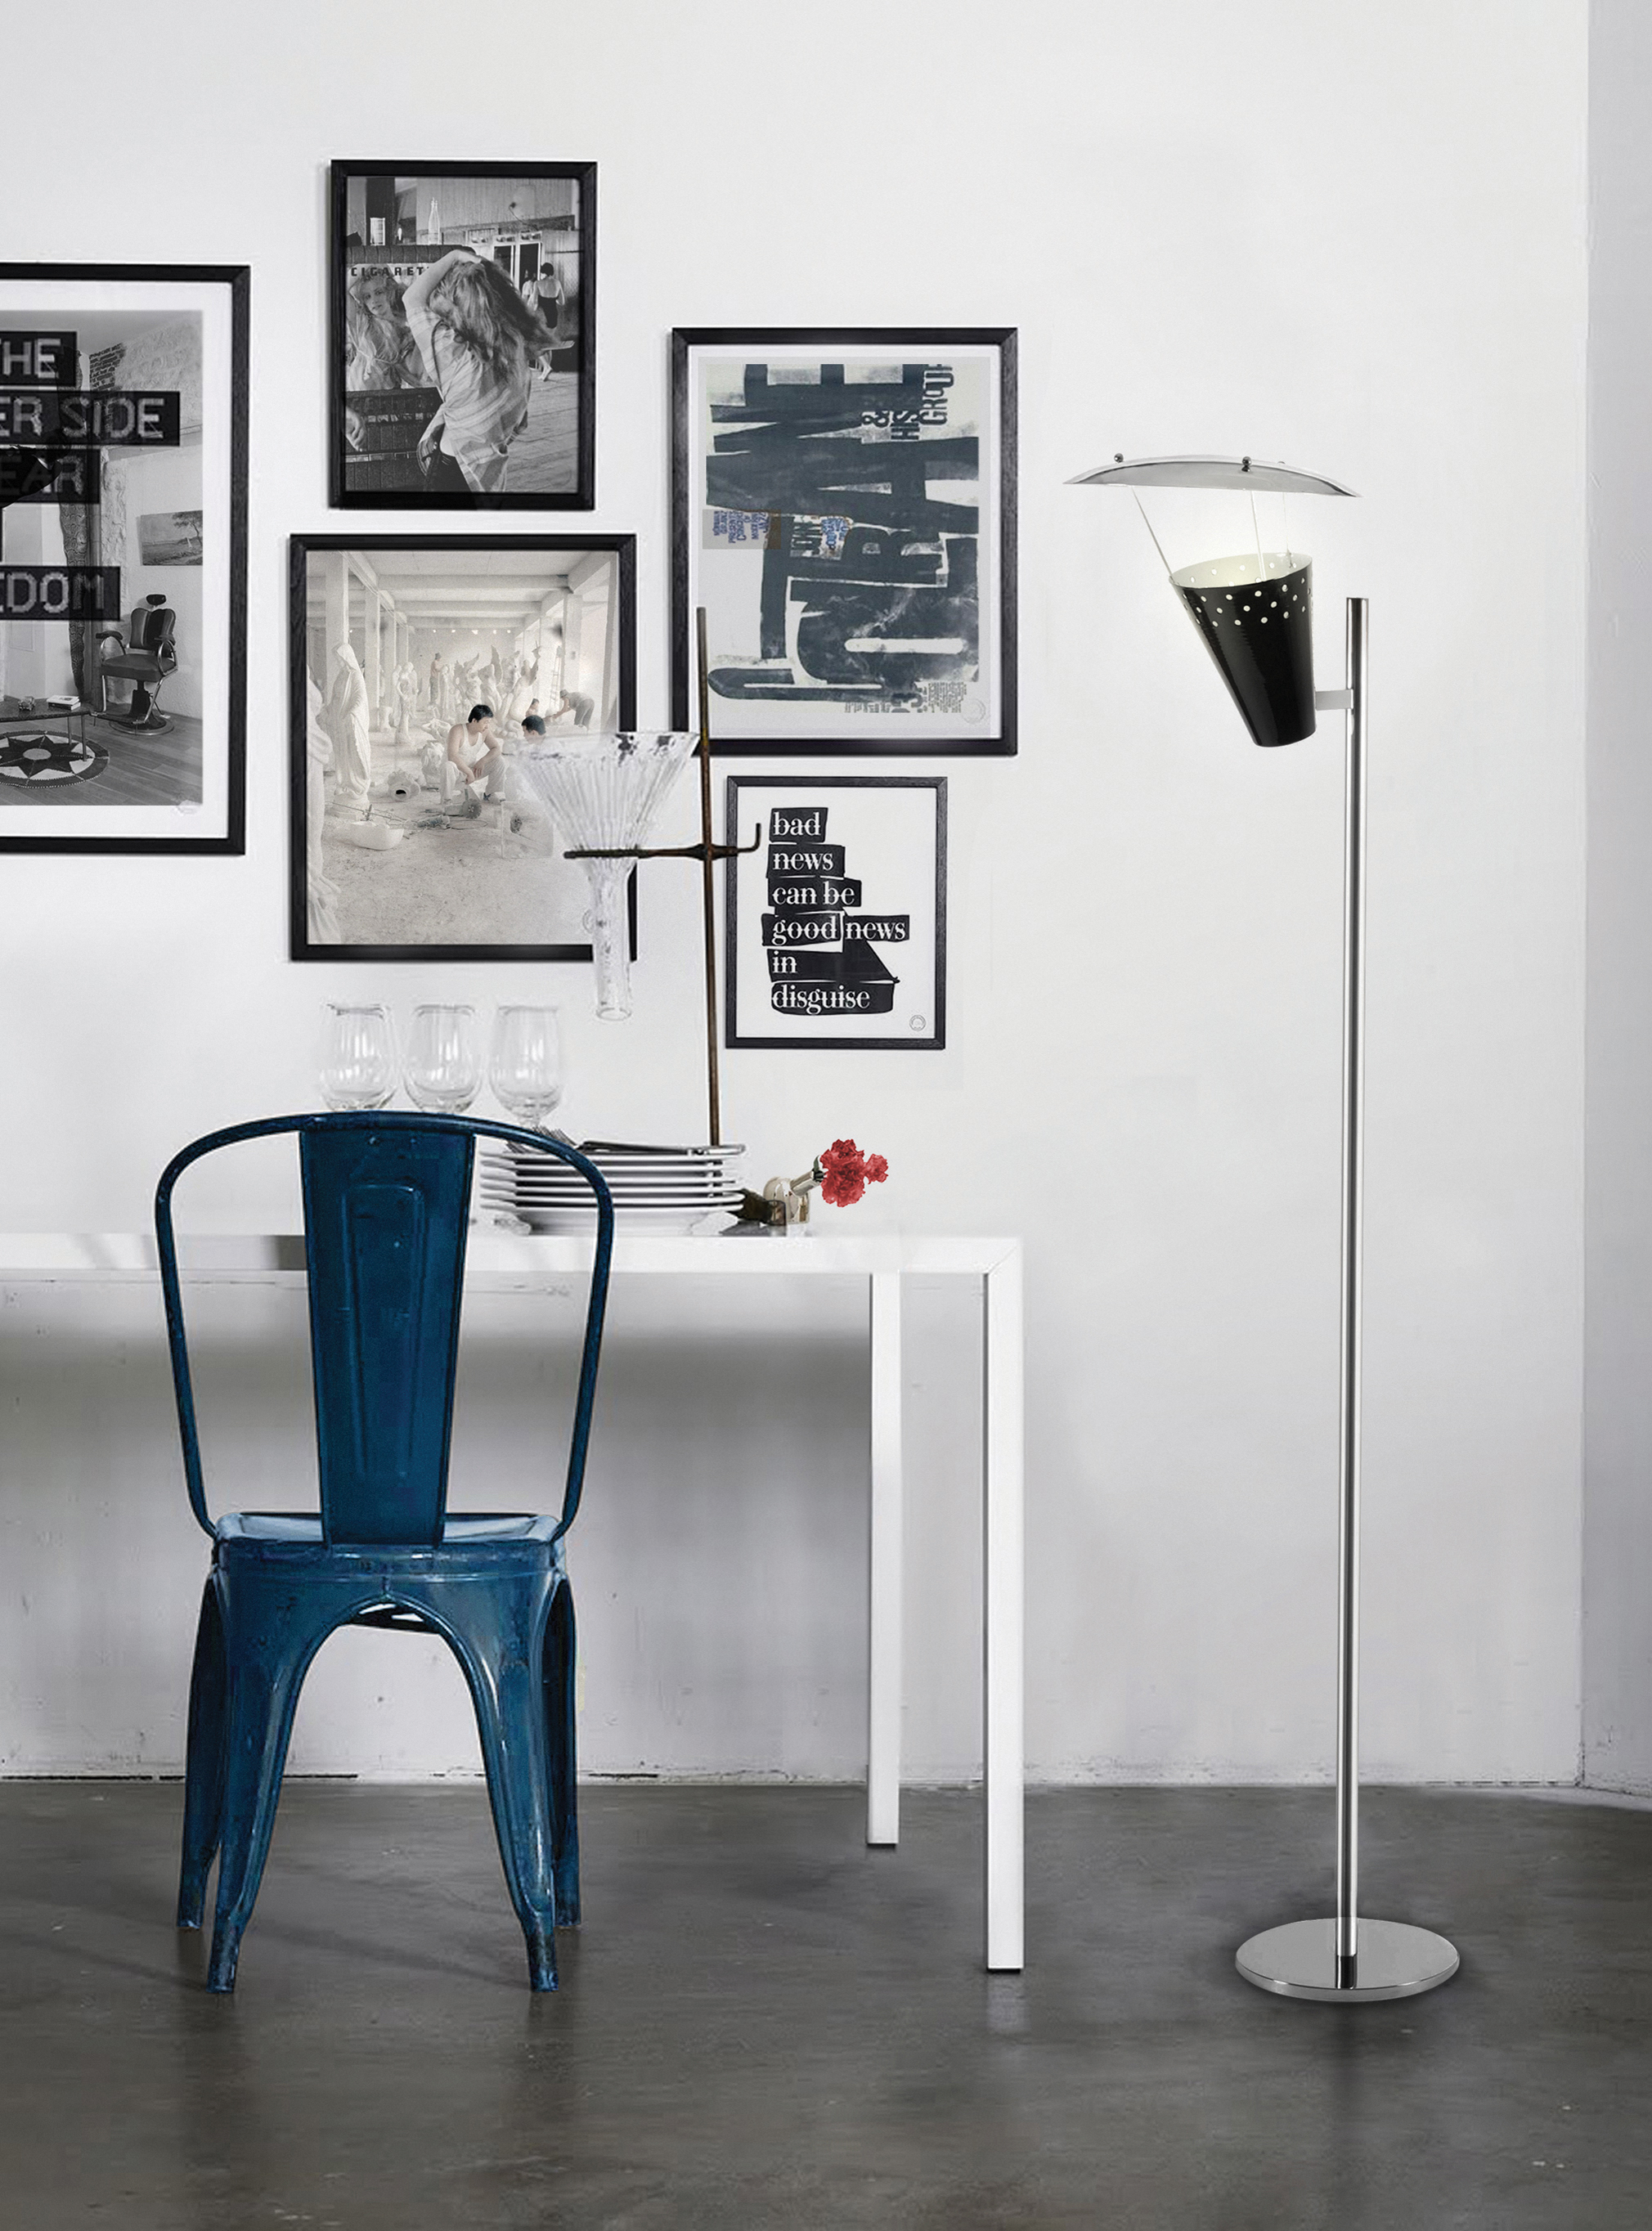 How Modern Floor Lamps Can modern floor lamps How Modern Floor Lamps Can Bring Glam To Your Home! How Modern Floor Lamps Can Bring Glam To Your Home 2